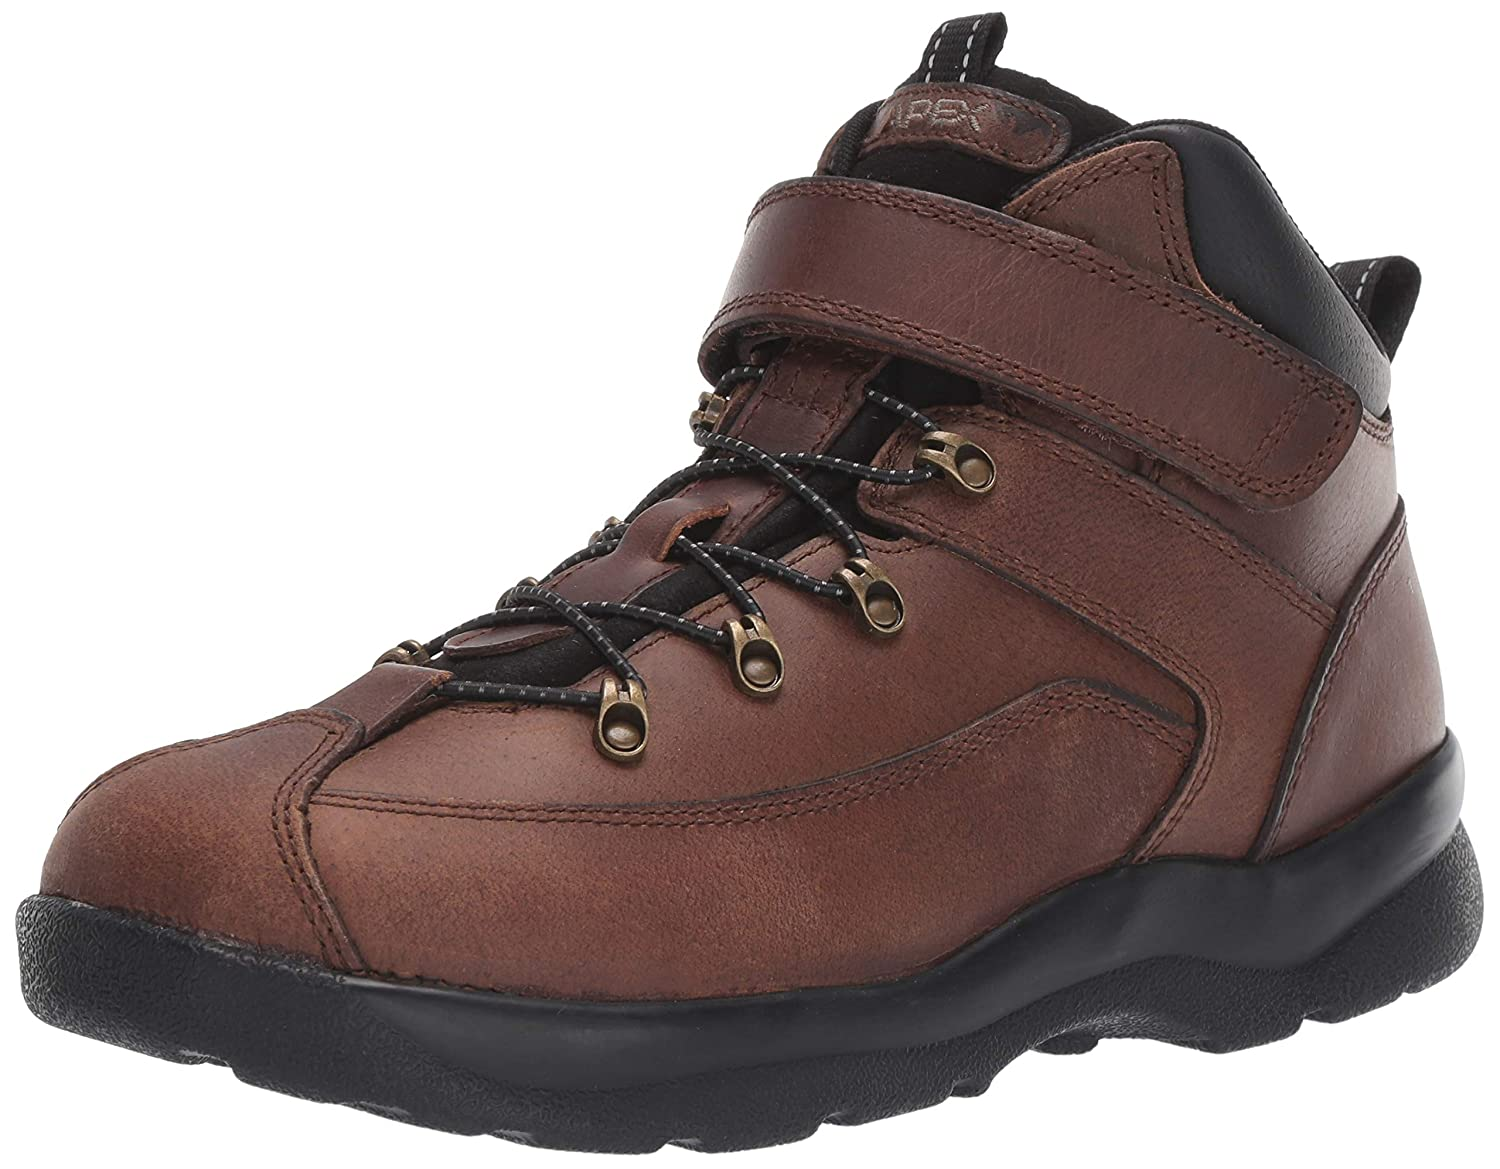 Image of Apex Men's Ariya Hiking Boot, Brown, 10 Hiking Boots